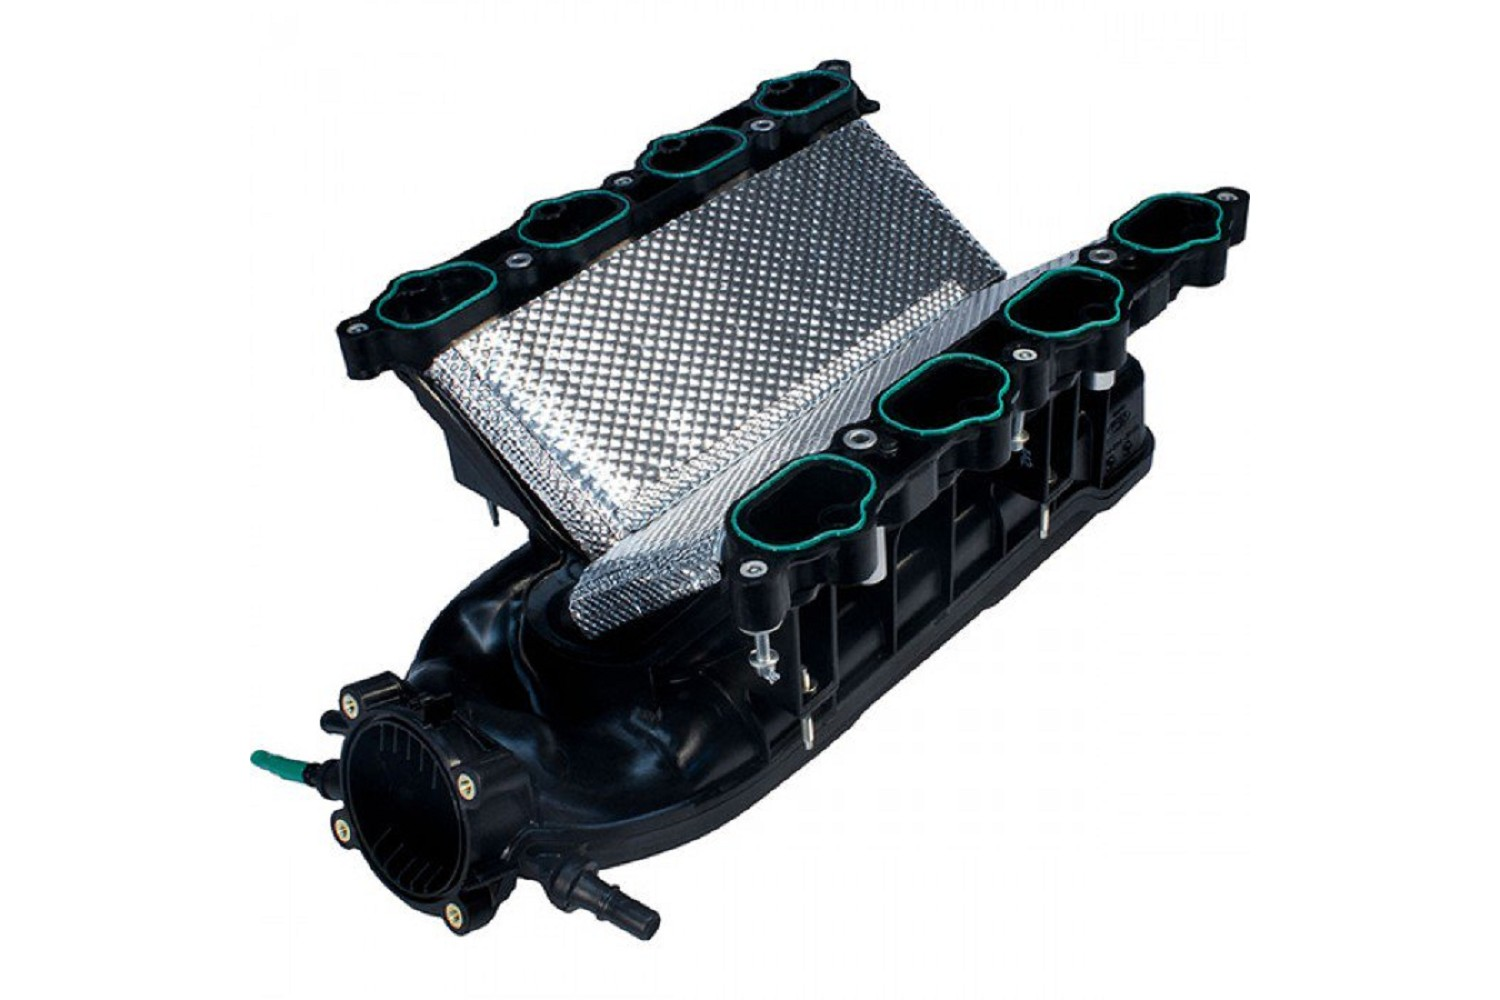 Boss 302 Intake Manifold >> Heatshield I M Shield Mustang Ford Racing Boss 302 Intake Manifold Heat Shield 5 0l Coyote